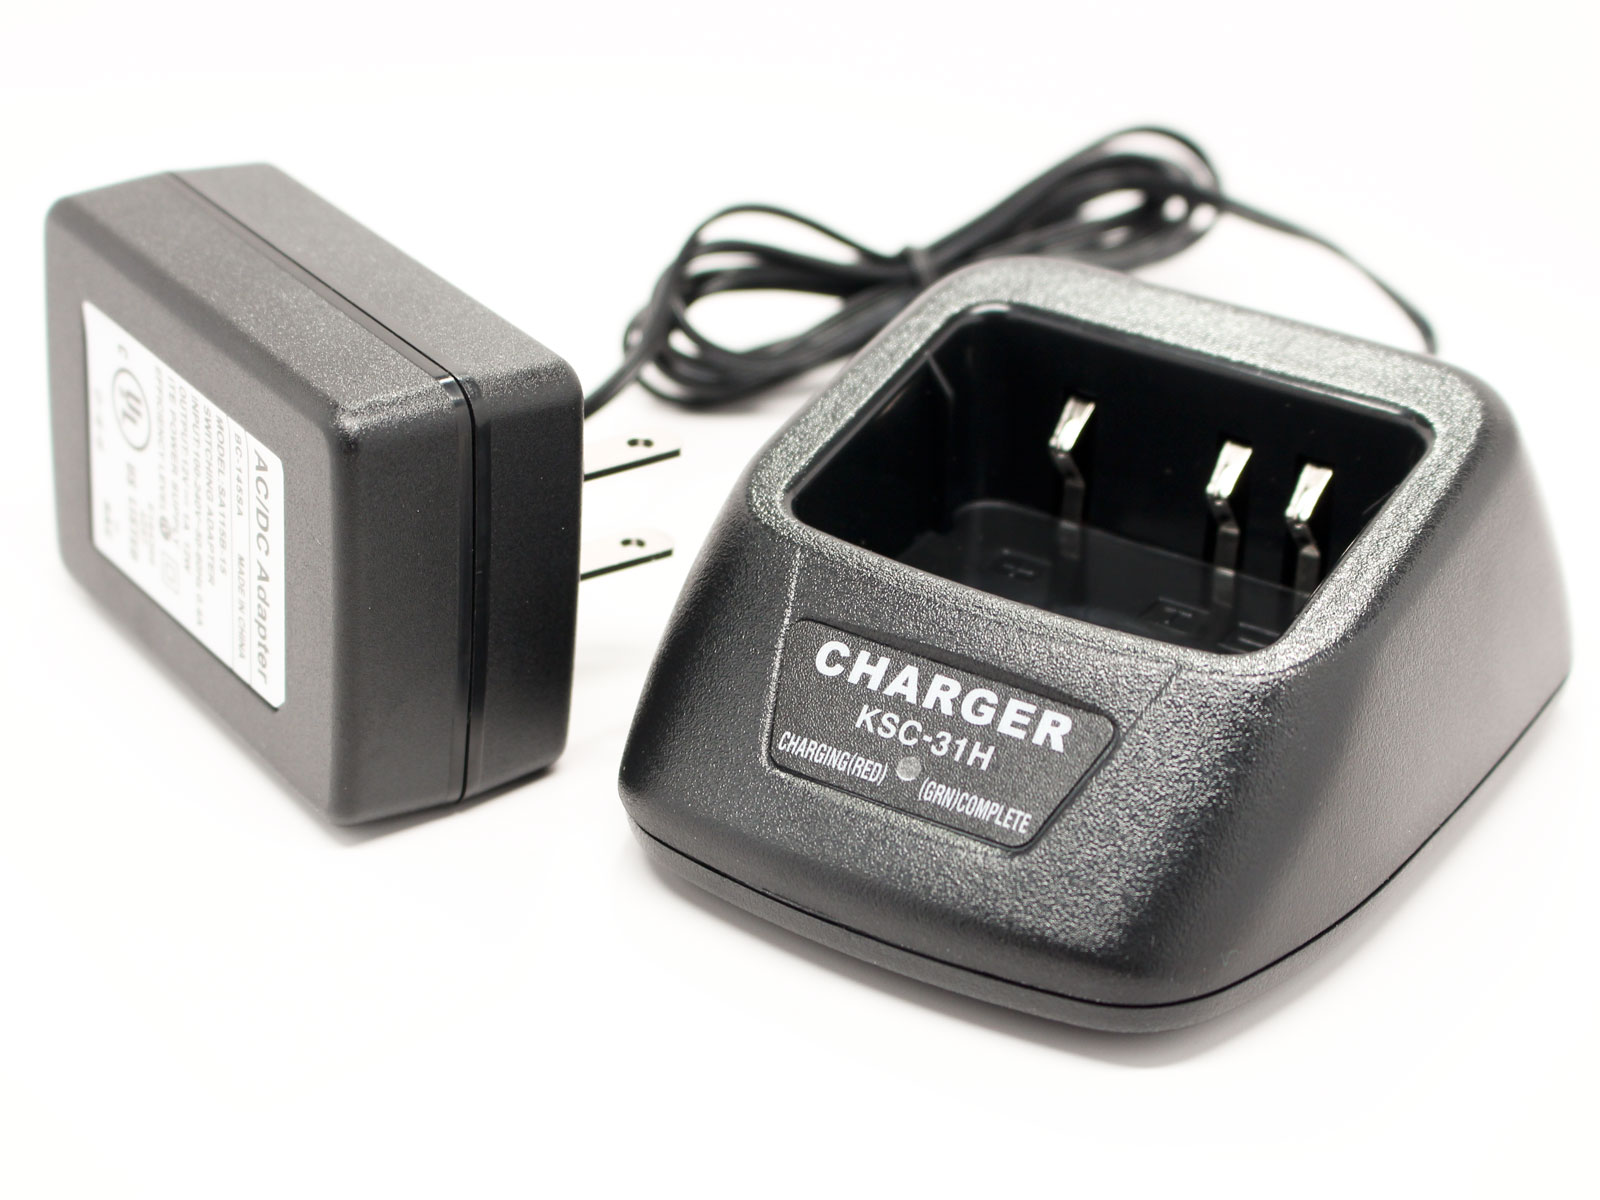 UpStart Battery Kenwood TK-3306M3 Charger - Replacement for Kenwood KNB-29N Two-Way Radio Chargers (100-240V) at Sears.com